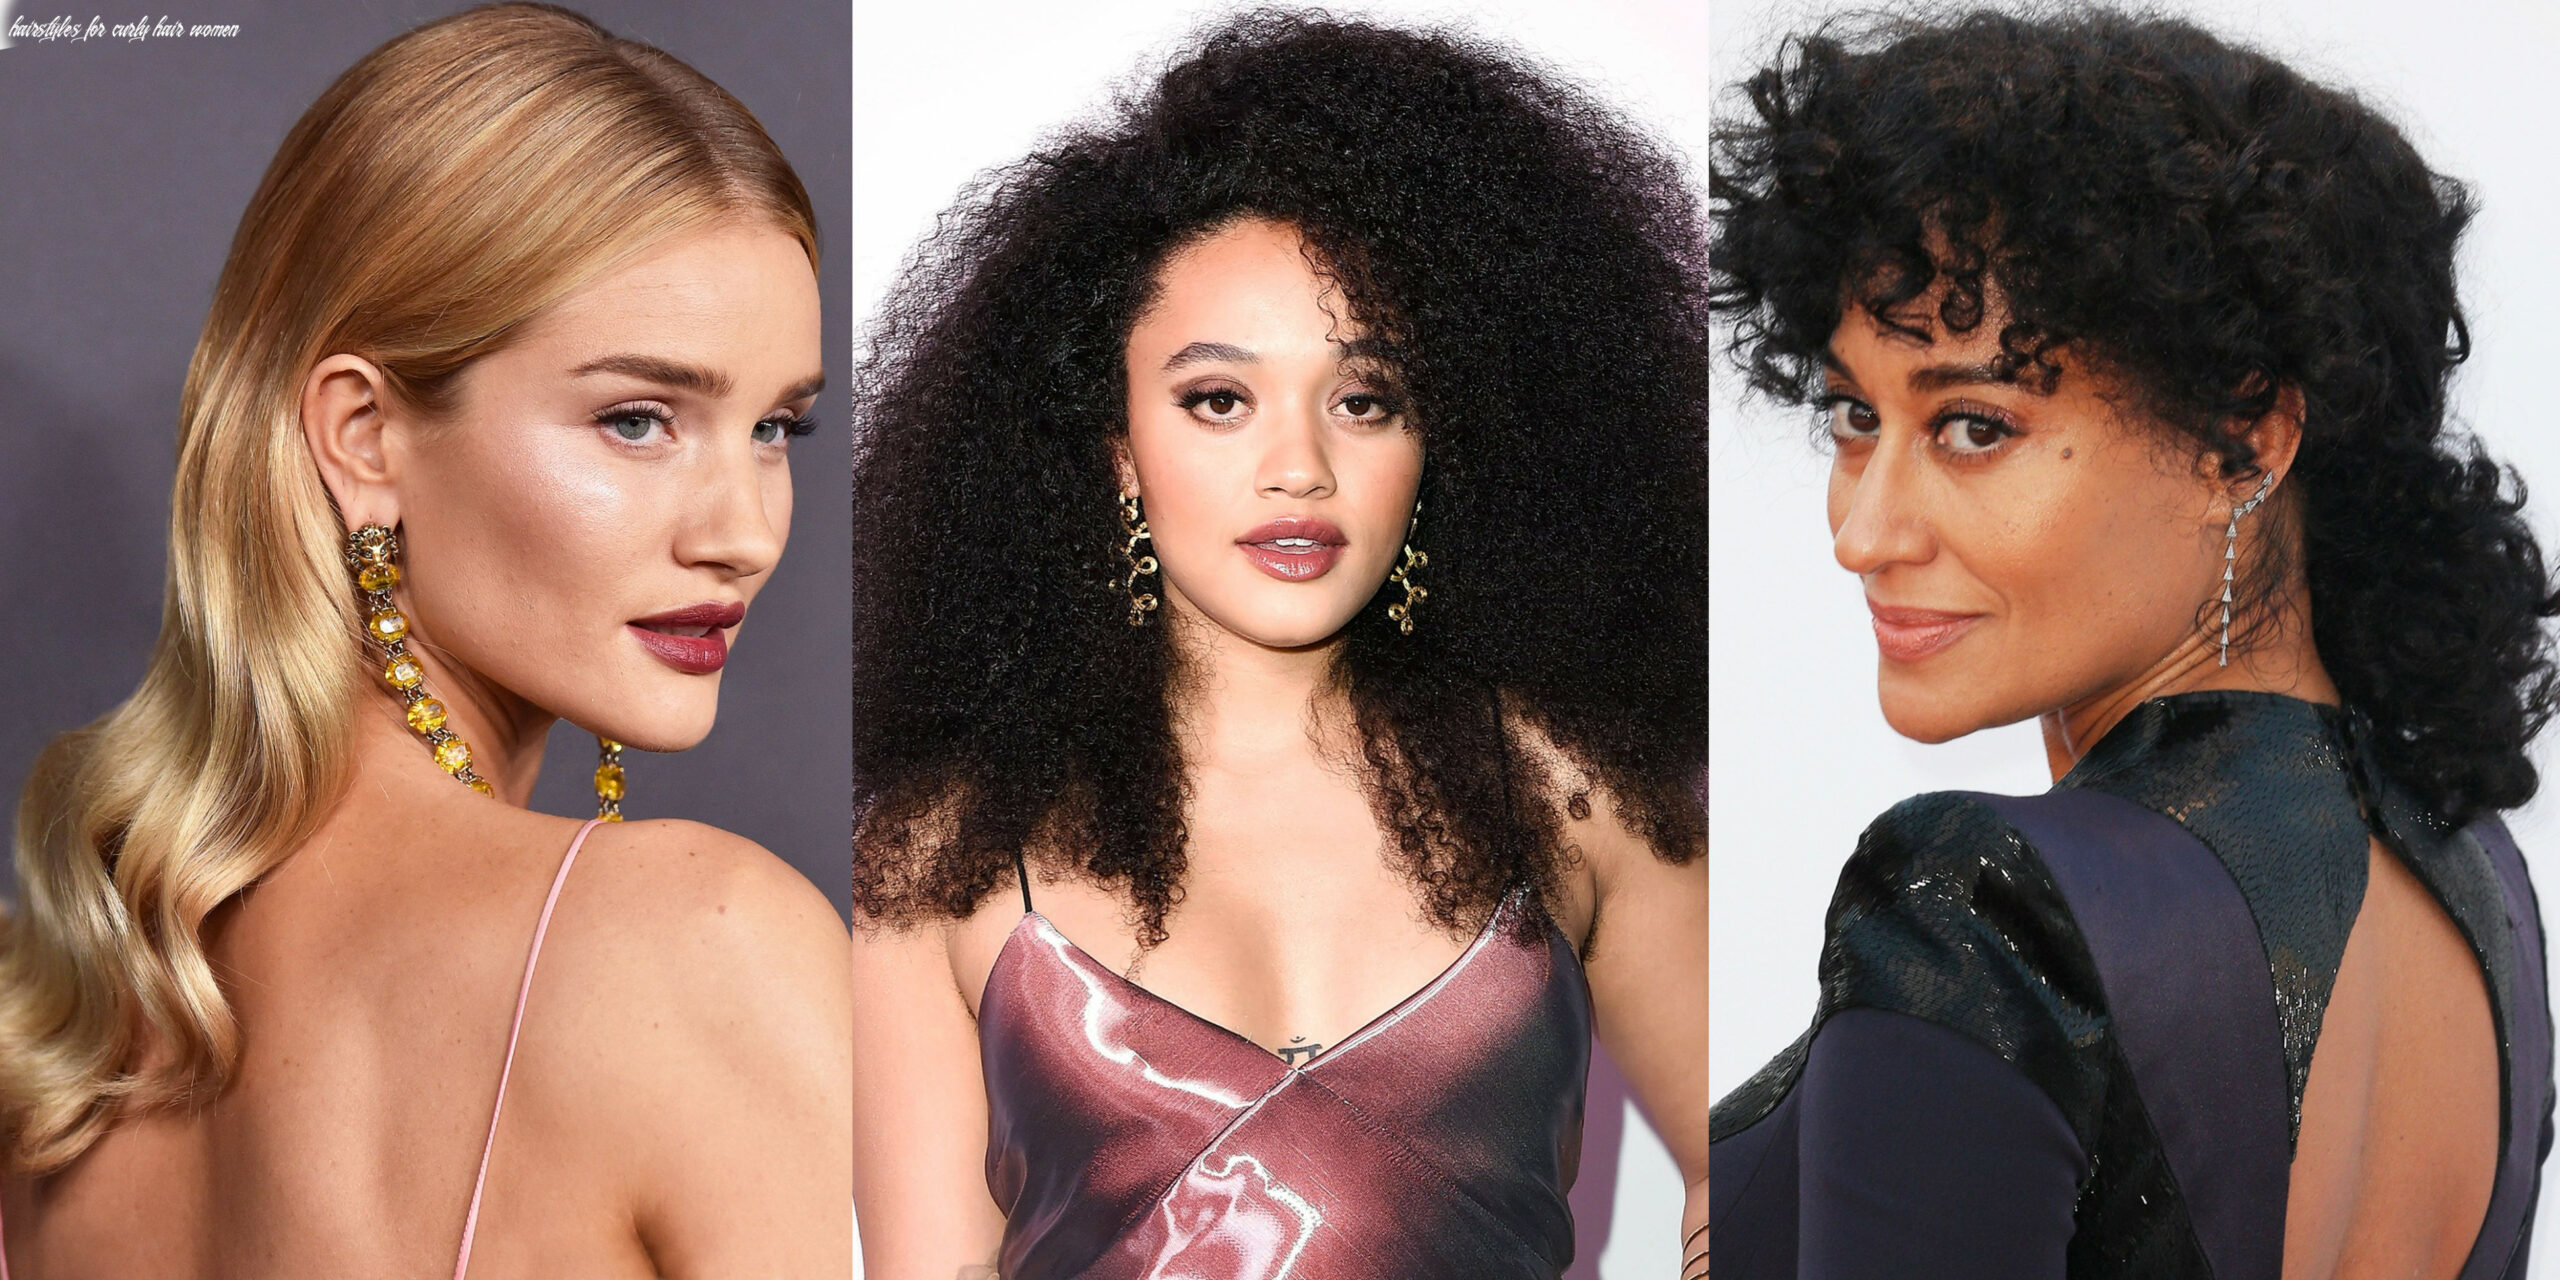 12 best curly hairstyles of 12 curly hair photos hairstyles for curly hair women